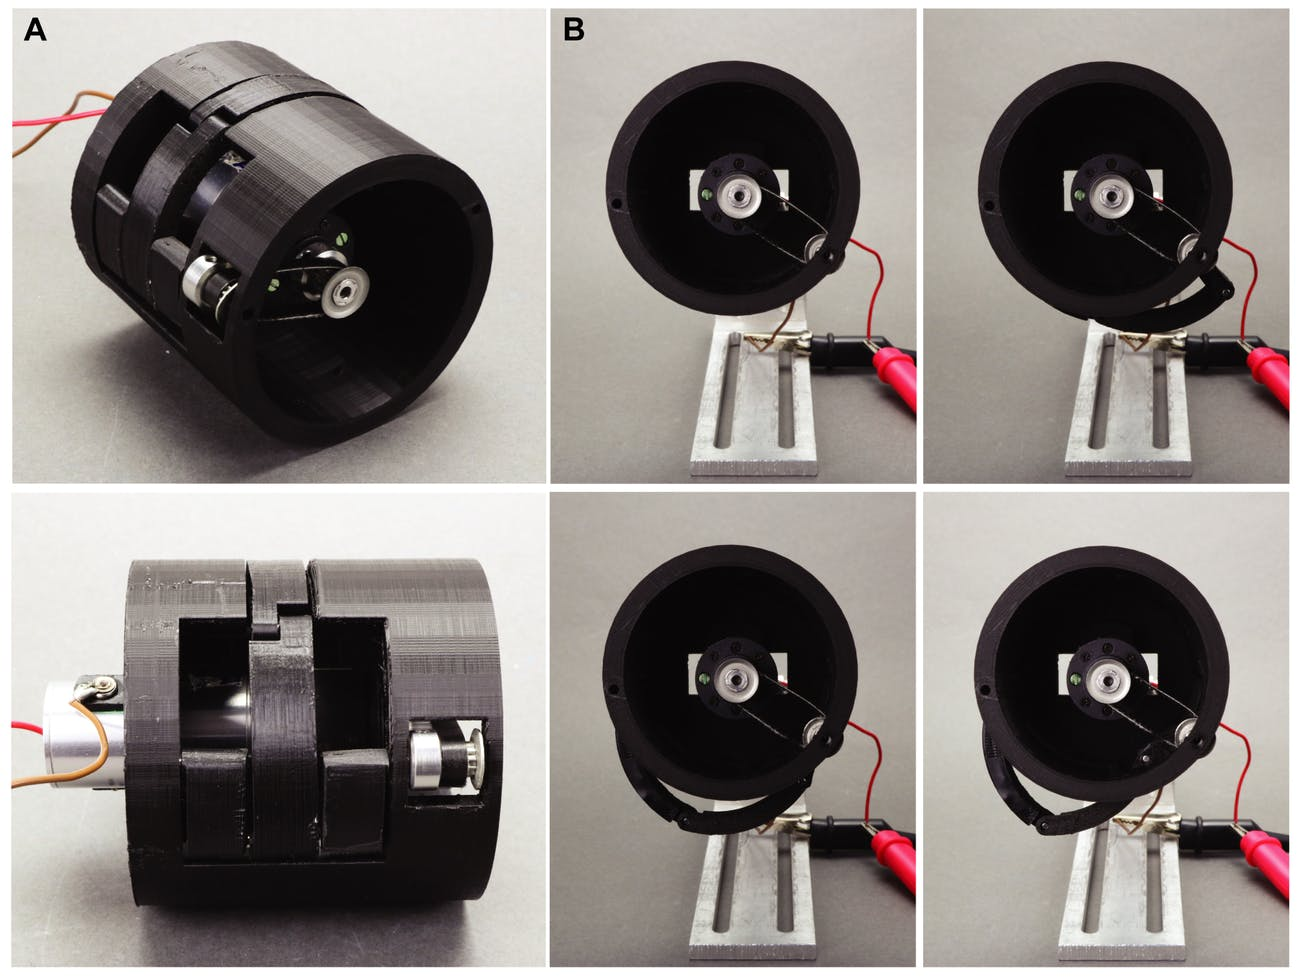 developed mechanical devices prototype